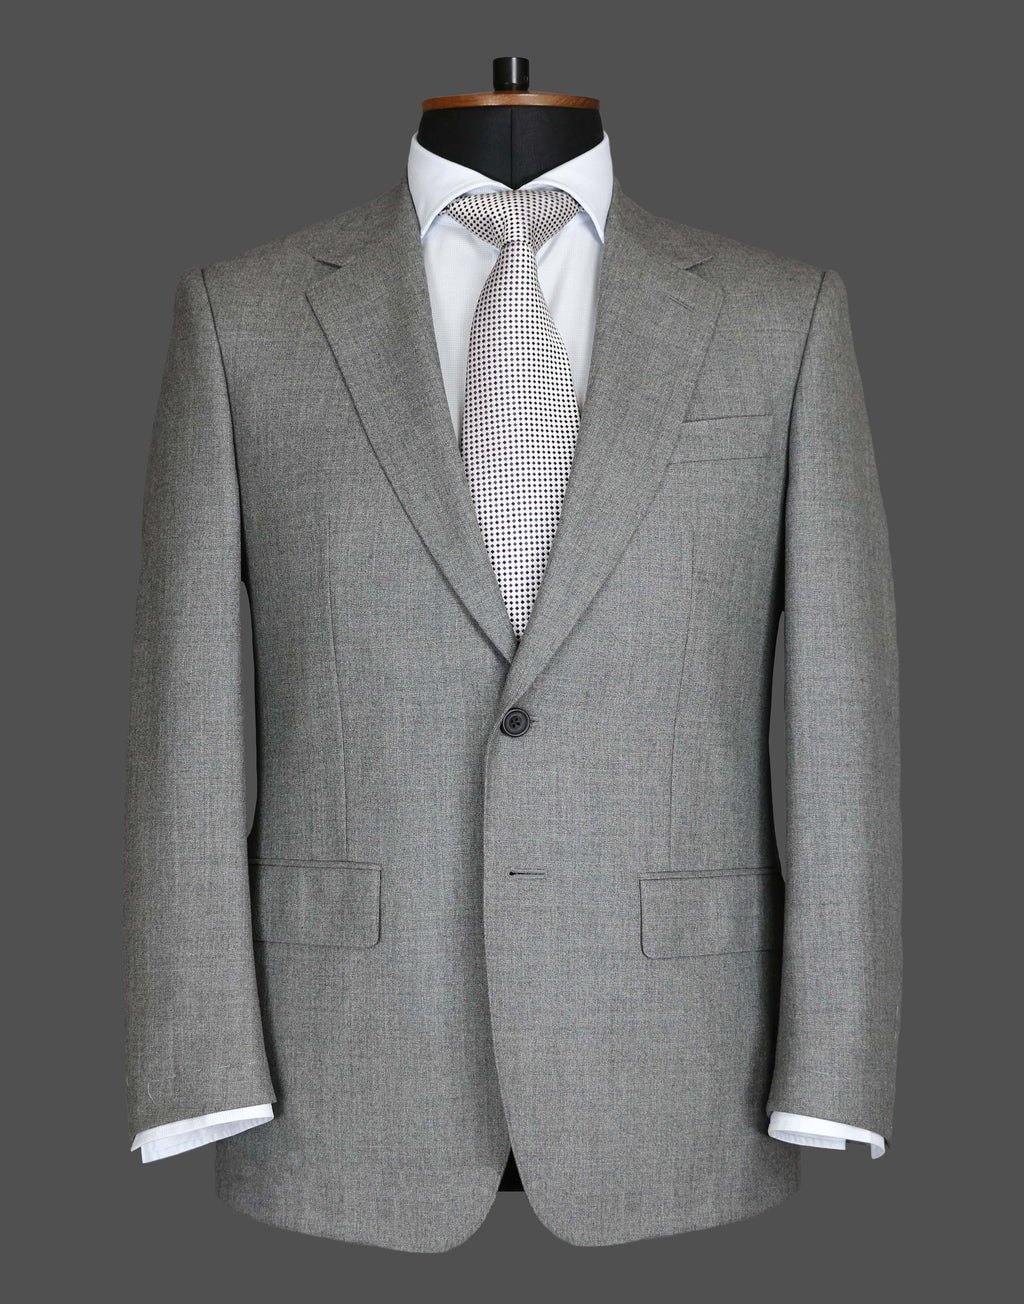 TLA018 - Plain Light Grey Suit